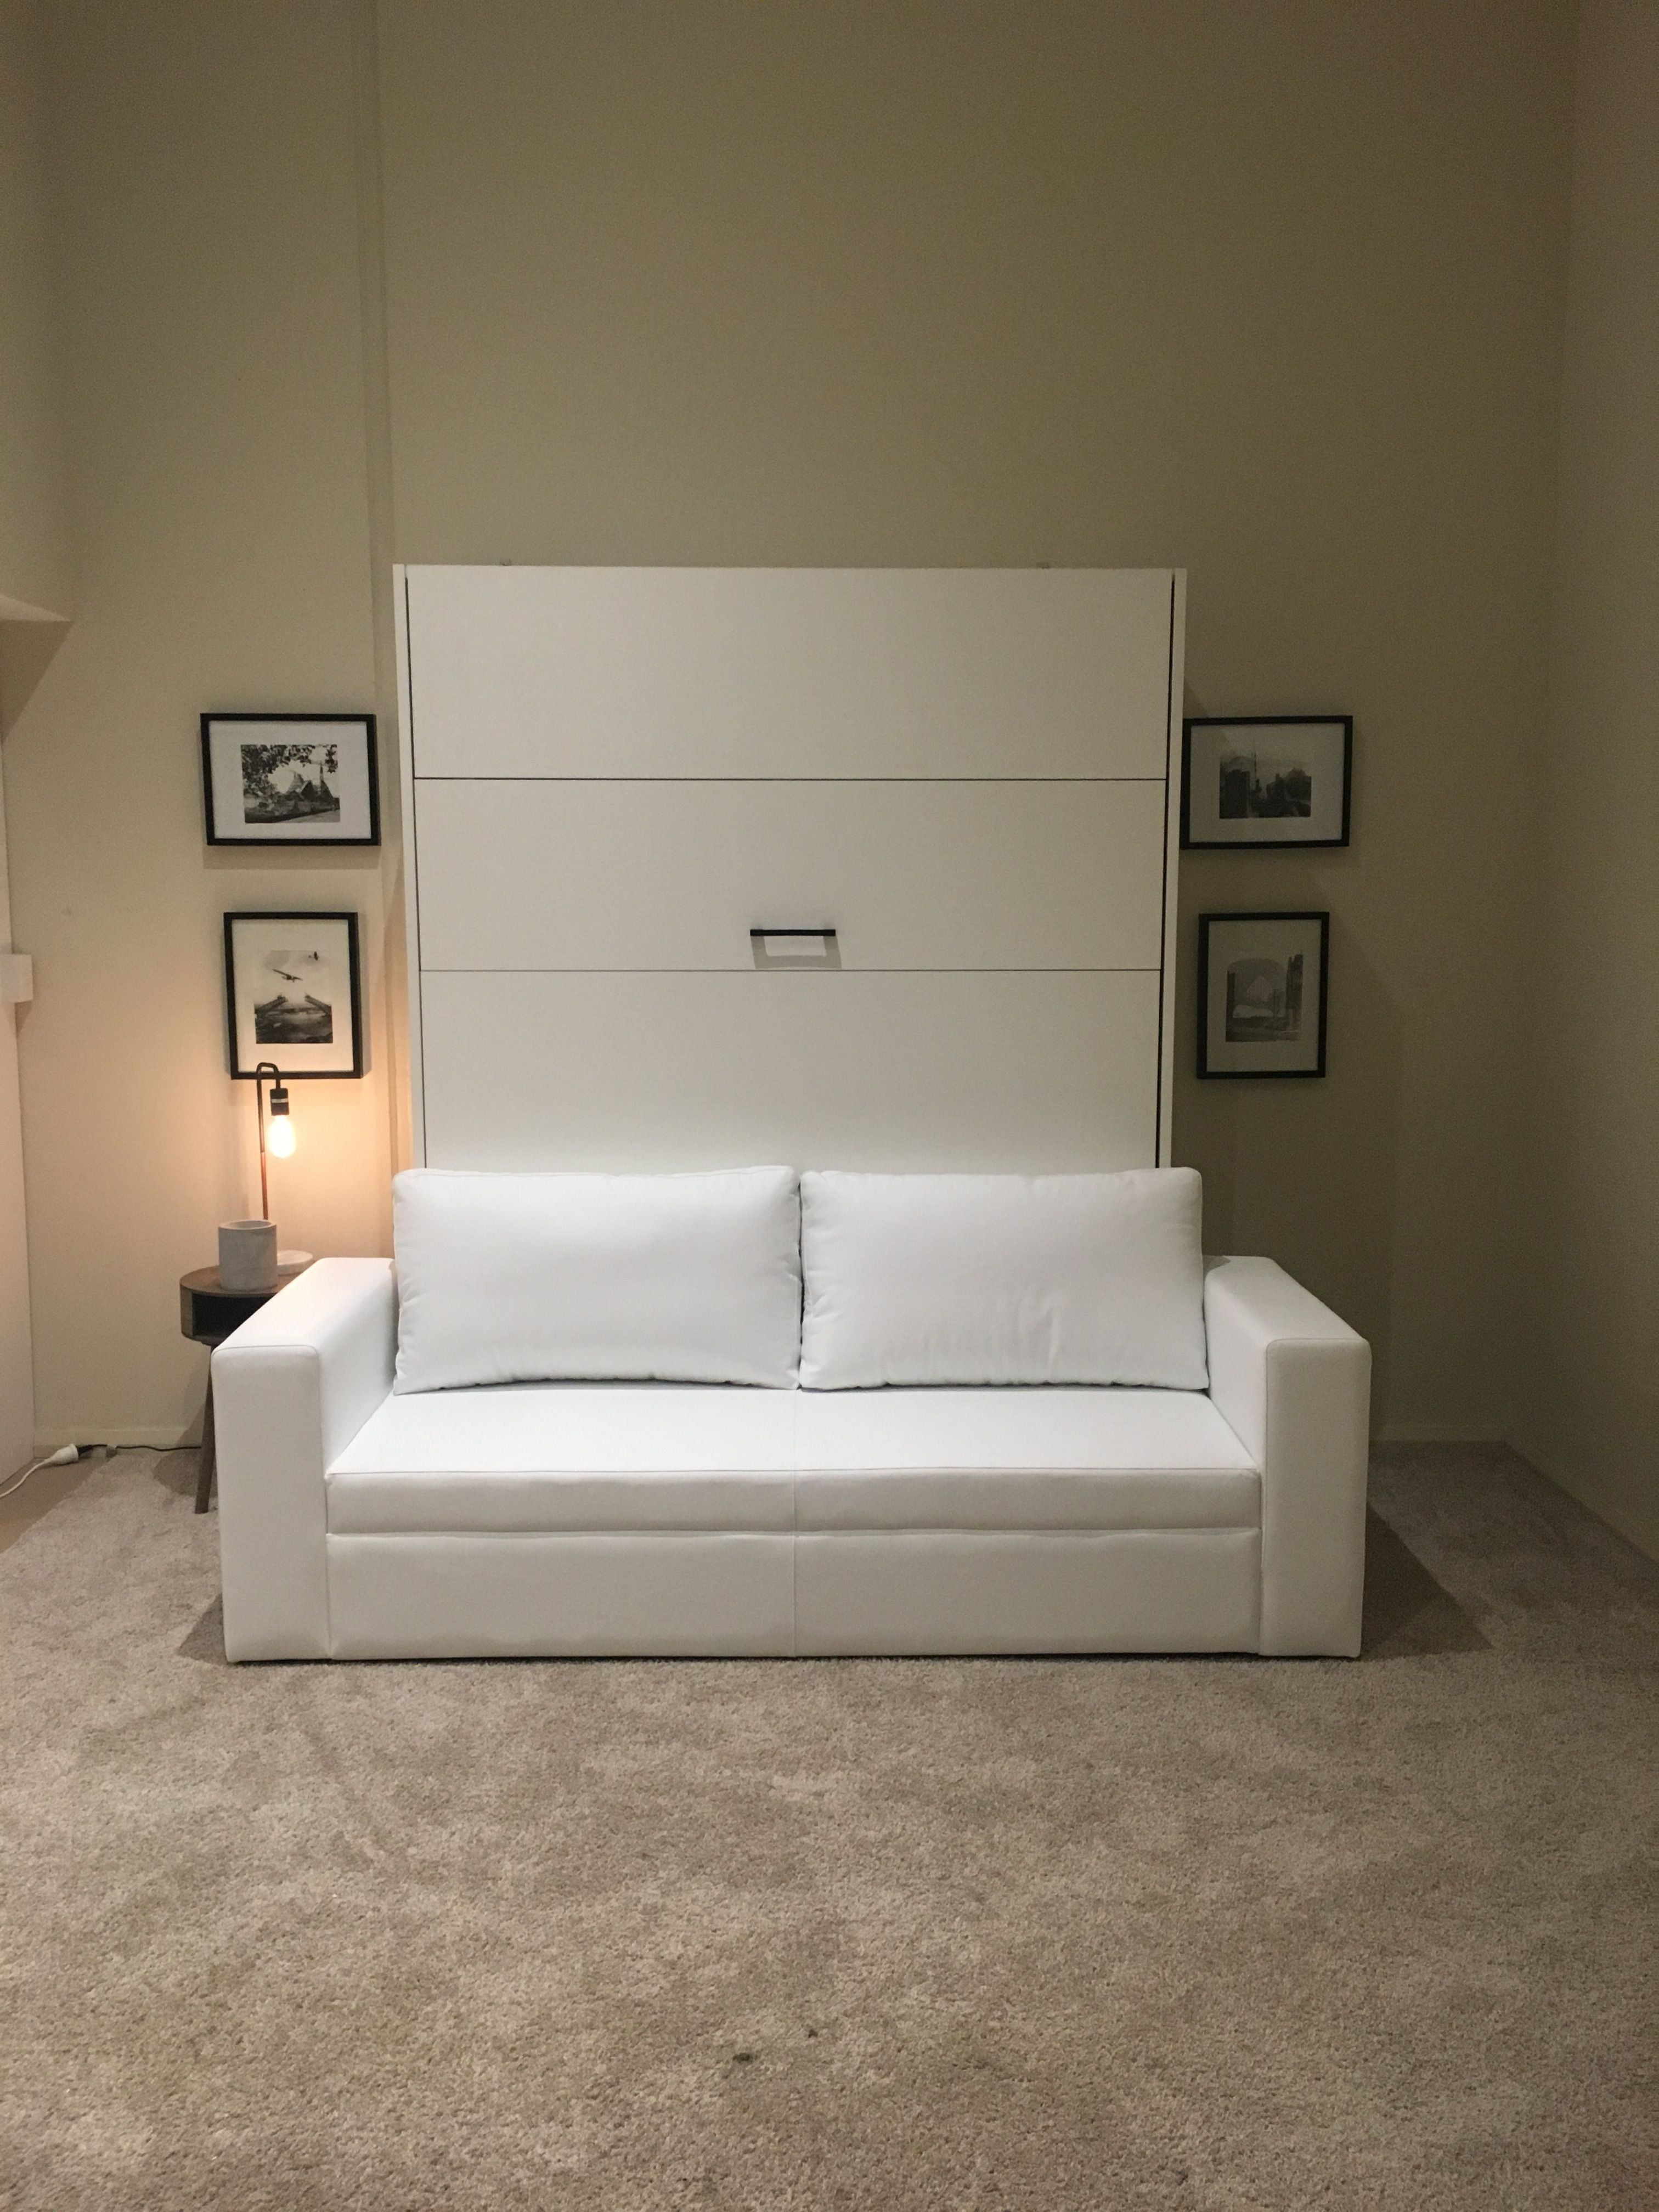 Bed Reviews Australia Wall Bed With Sofa Australia Nice Houzz